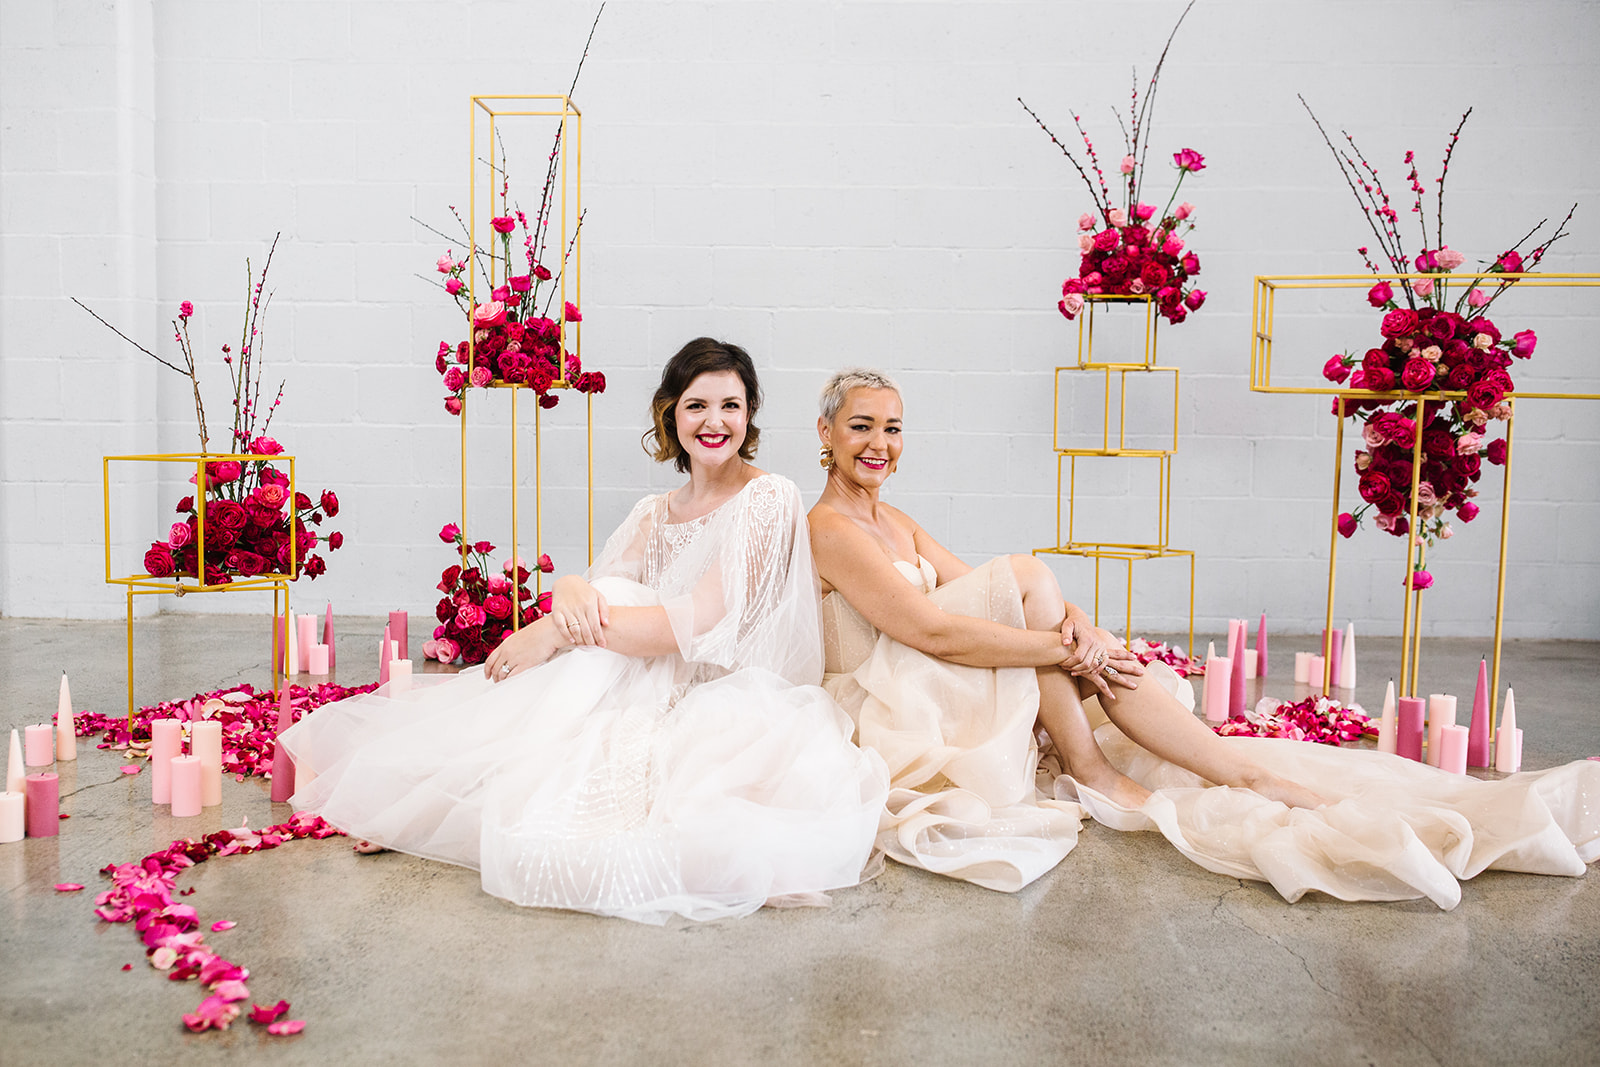 camilla kirk photography gold coast weddings bridal gowns floral designer signage cakes stationery